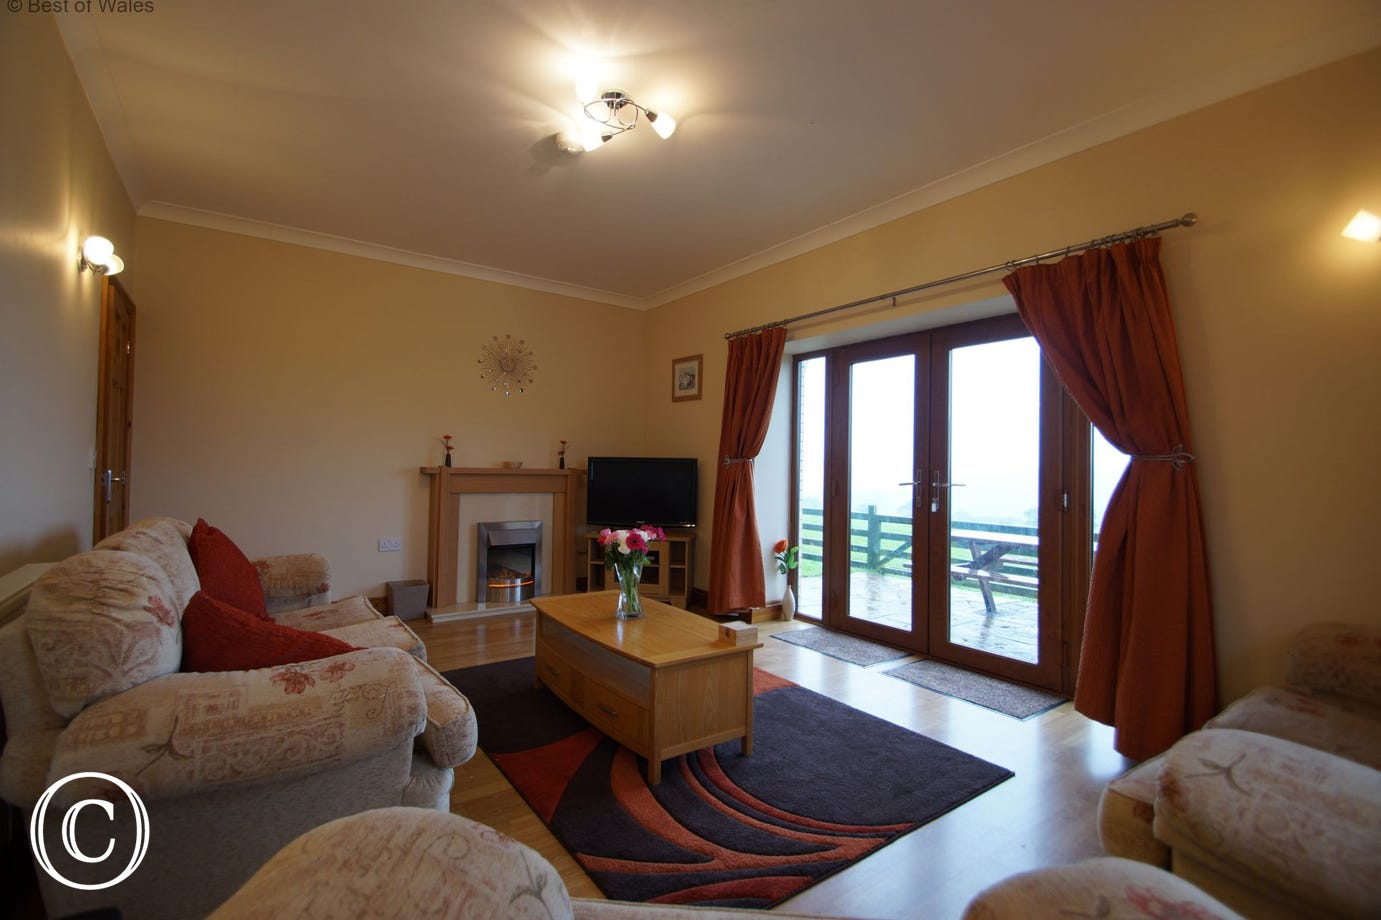 Spacious, comfortable lounge at Blaenenlli holiday cottage Aberystwyth